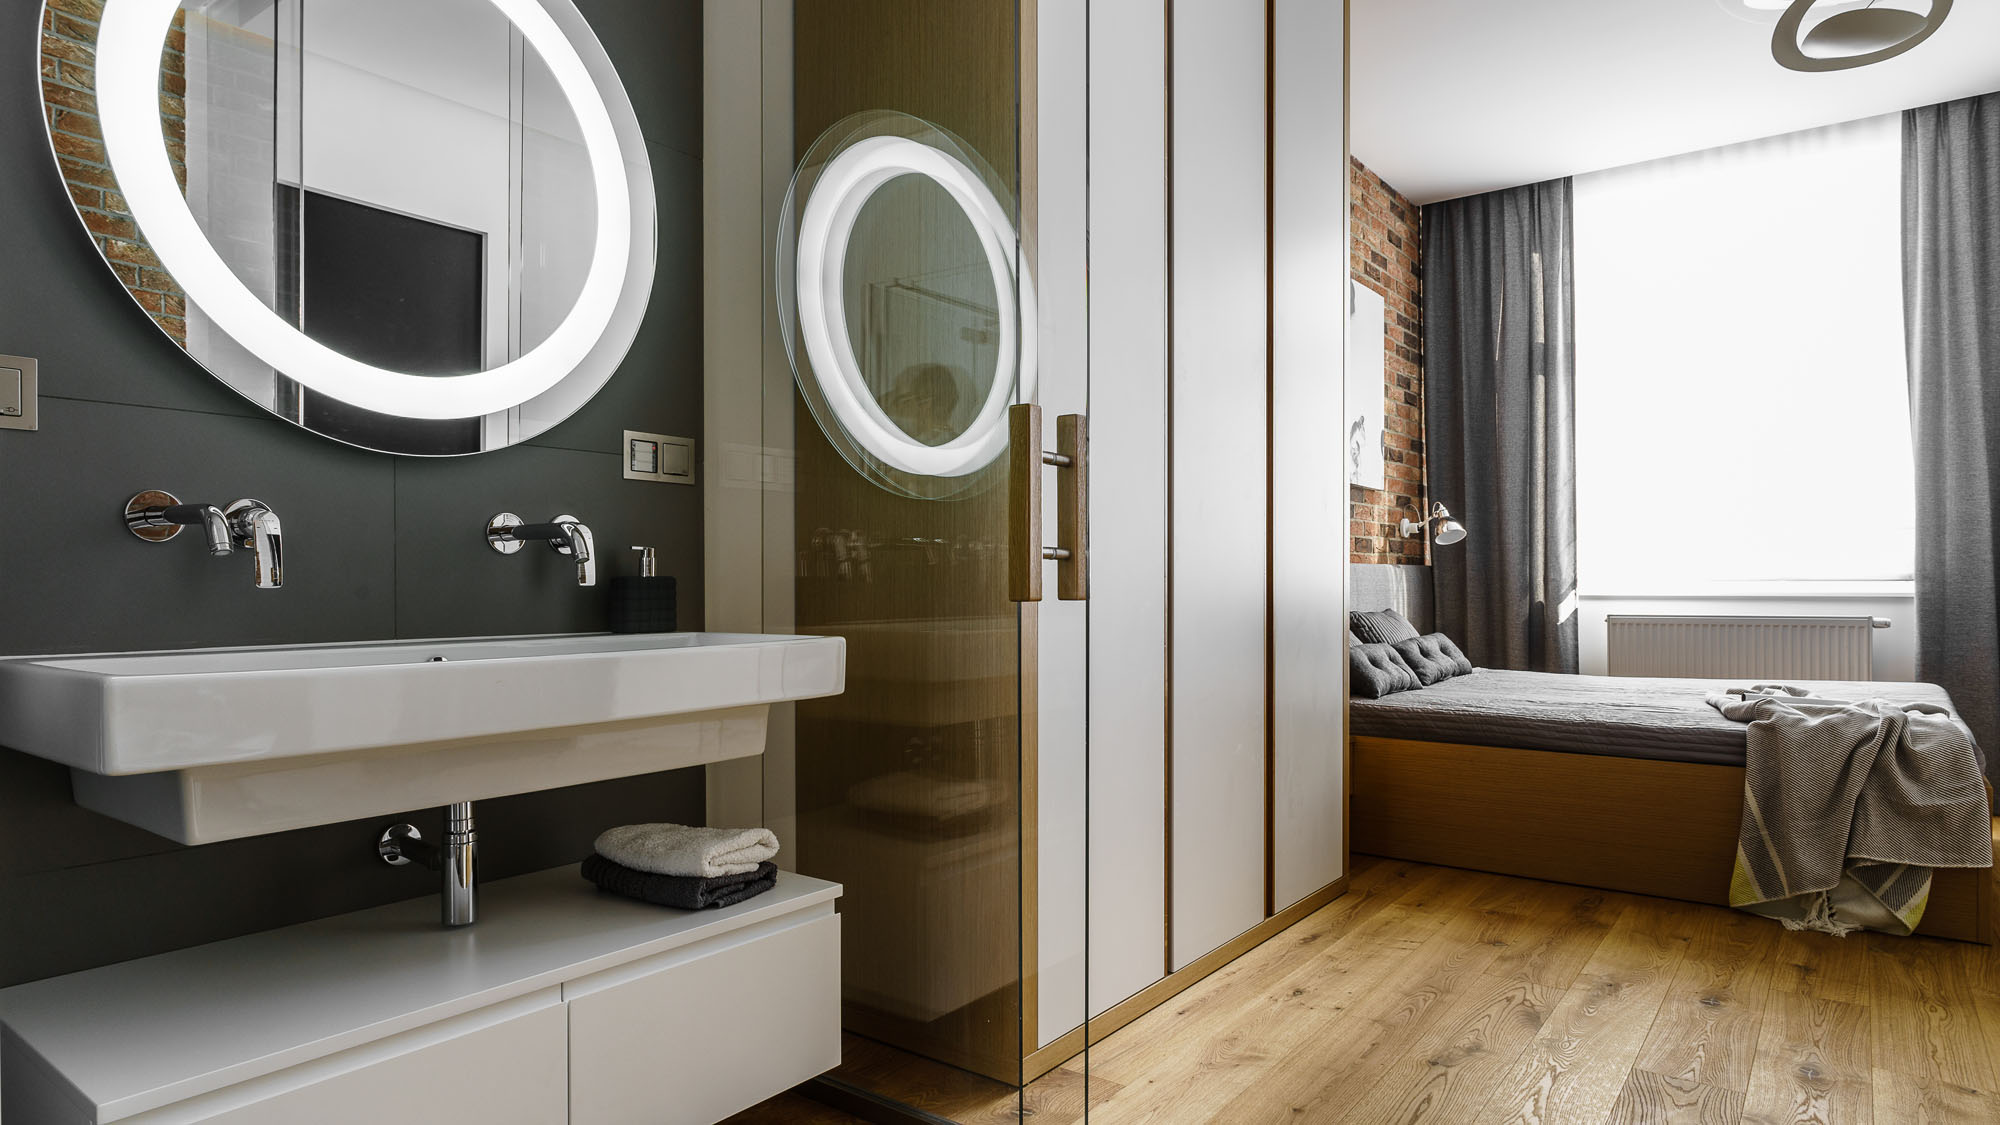 Modern Metallic, Wooden, White Theme Three Bedroom Apartment in Gdynia by Dragon Art-37